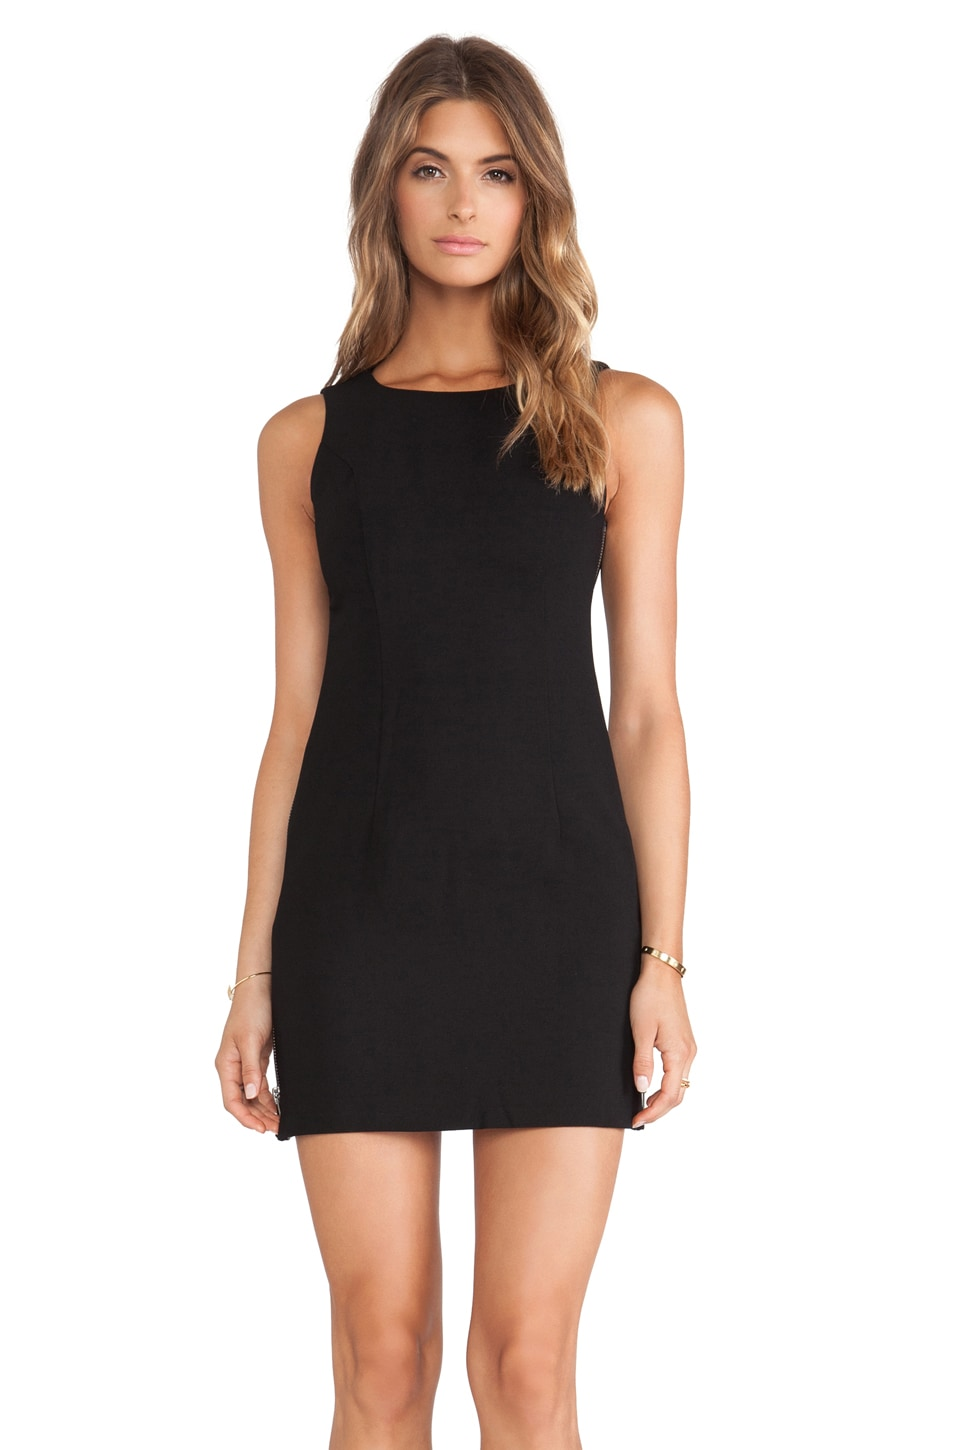 BCBGeneration Multi Way Dress in Black